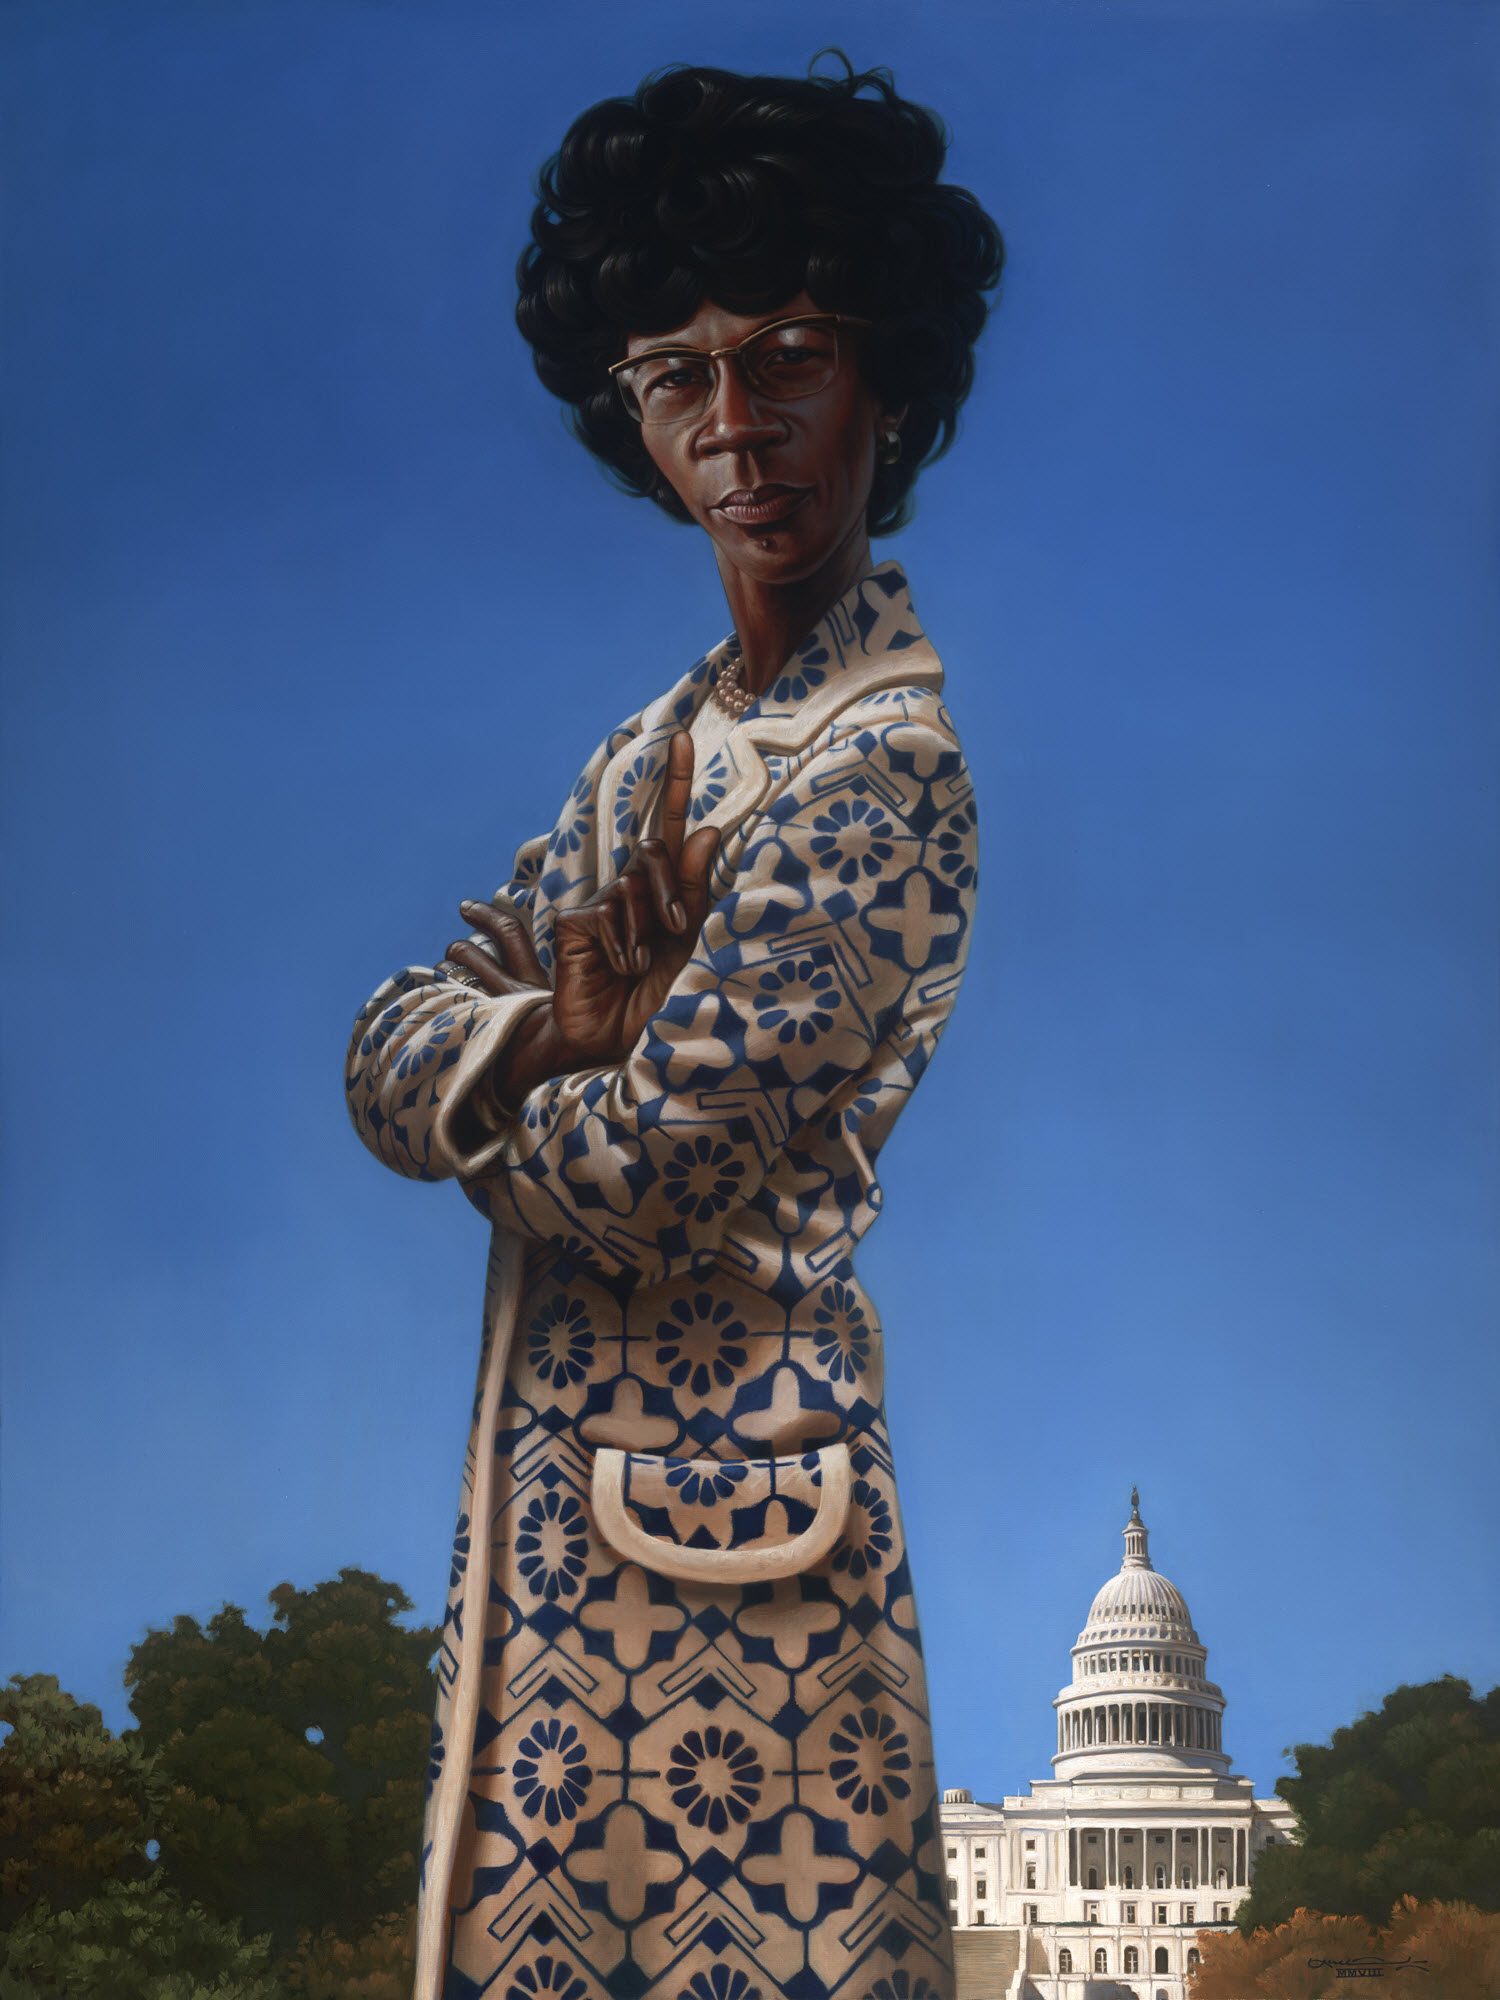 Shirley_Chisholm_portrait.jpg